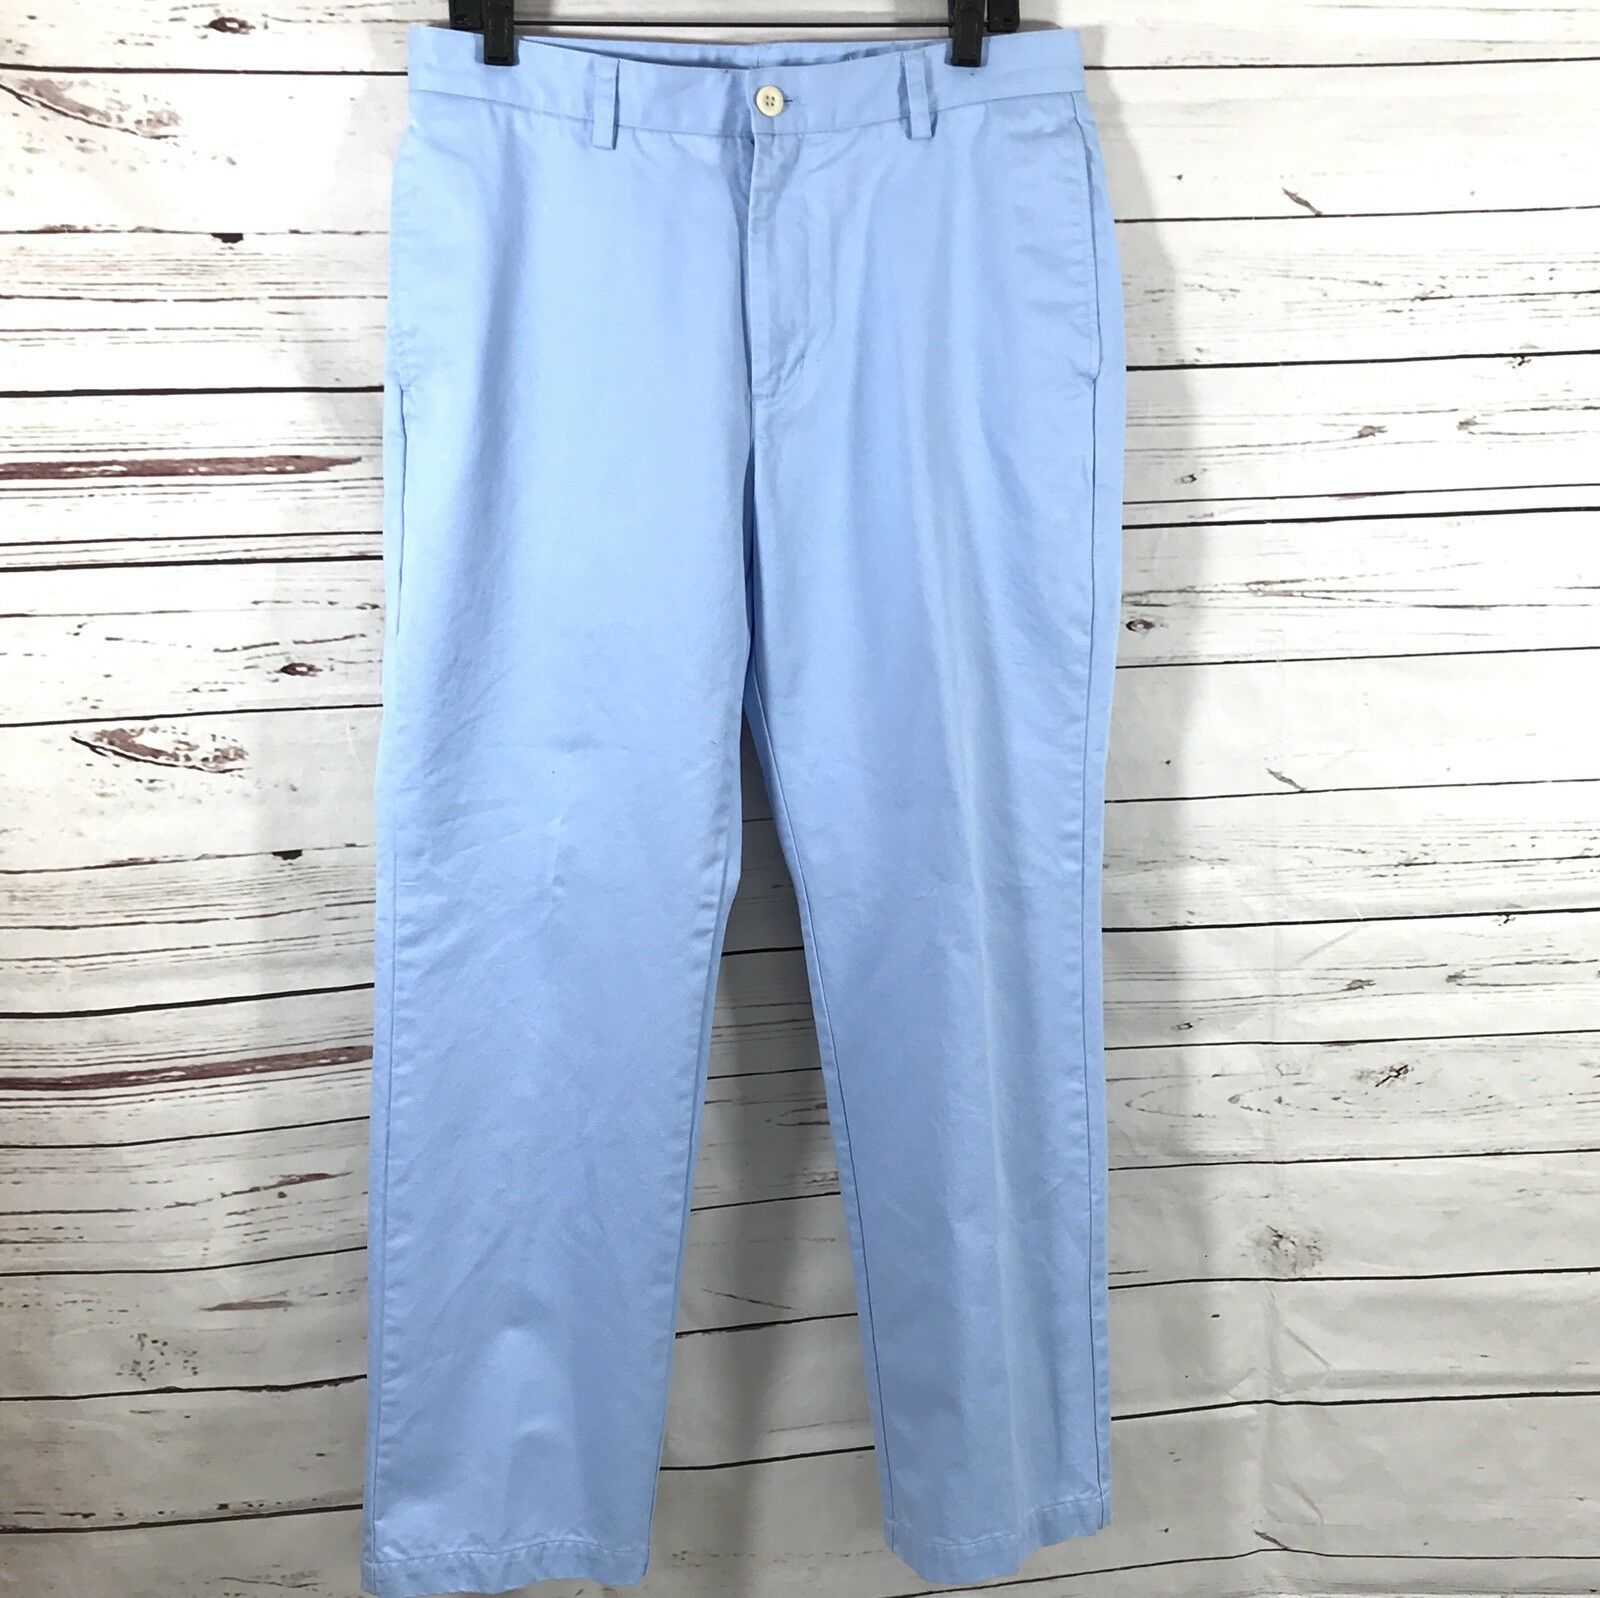 Vineyard Vines By Step & Ian Men's Pants bluee Size 33x30